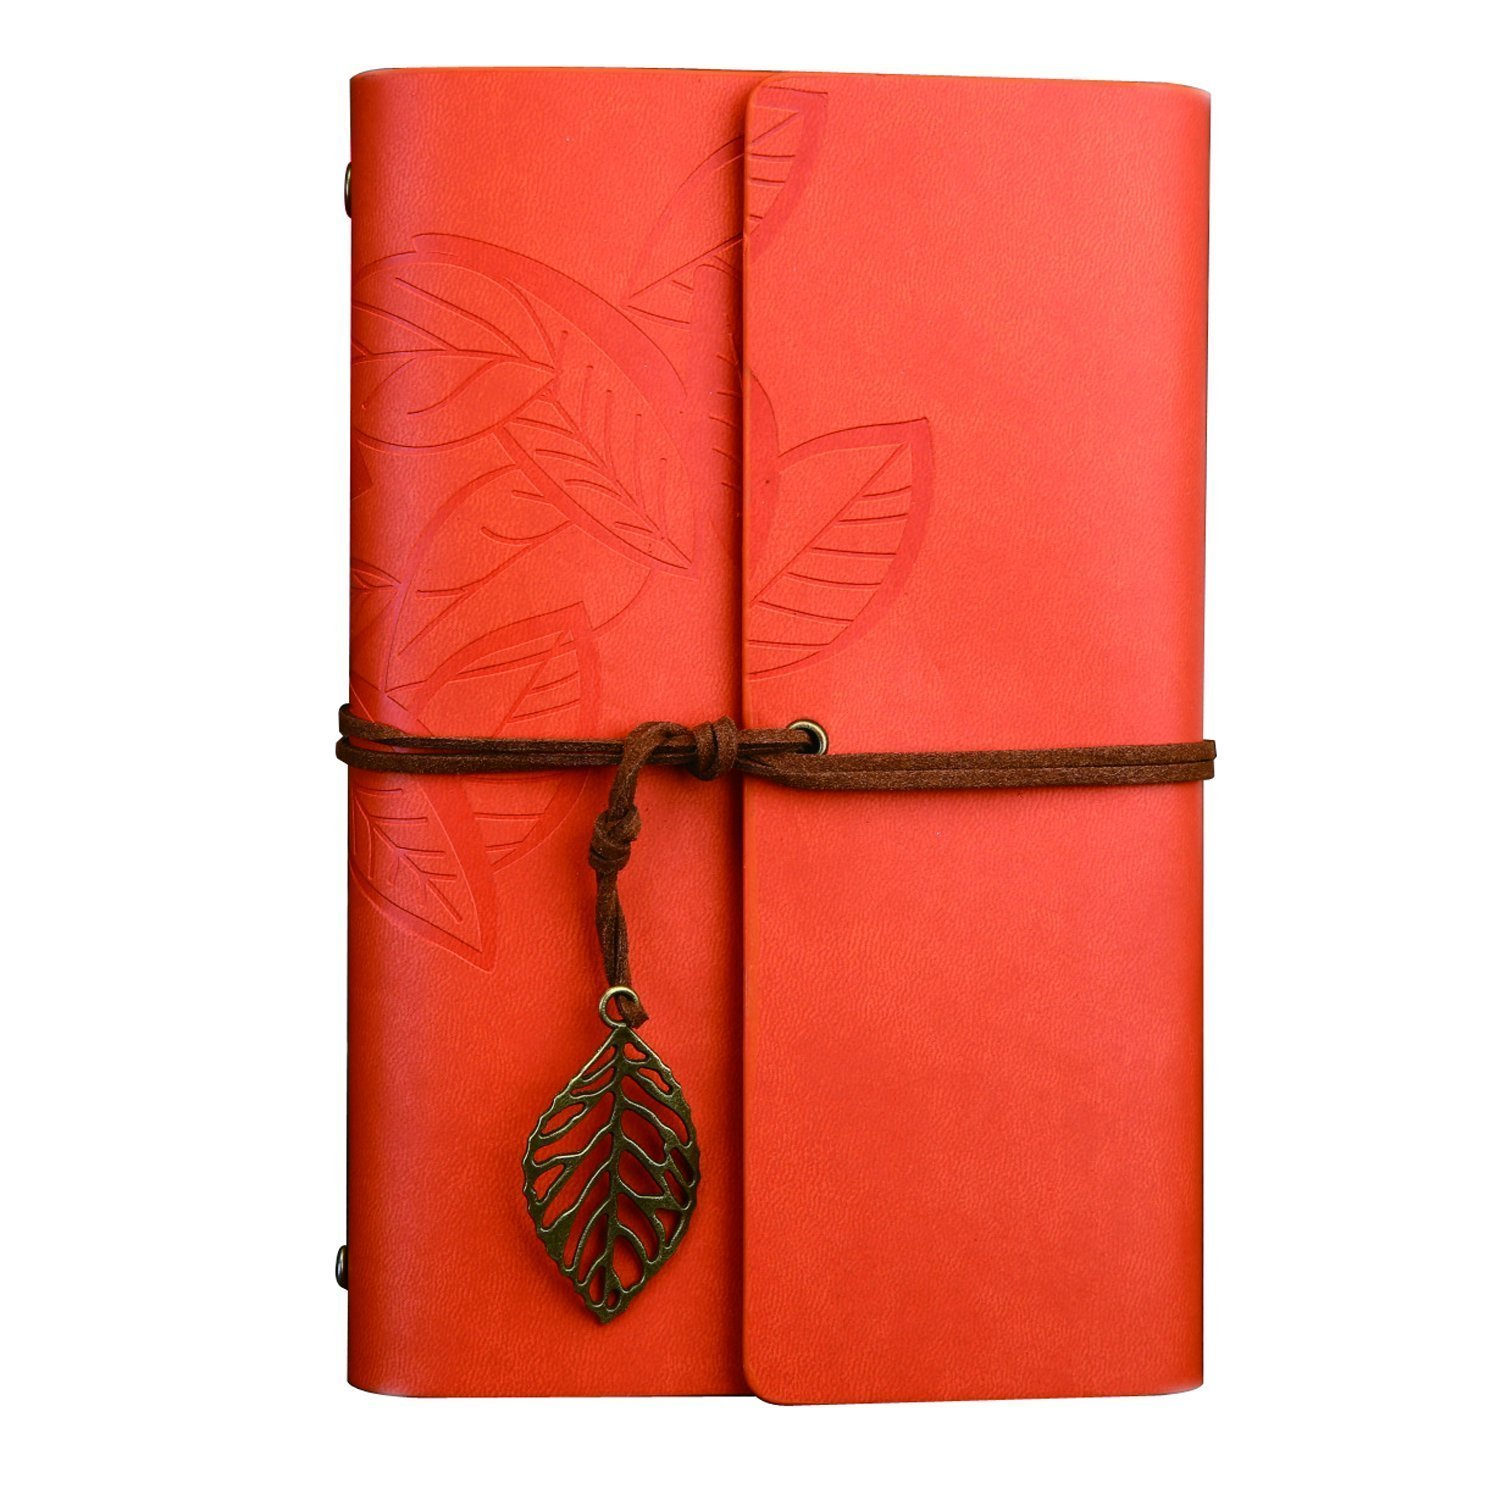 Ya Jin Vintage Leather Journal Notebook, Classic Embossed Loose Leaf Diary with Blank Pages and Retro Pendants, 80125mm, Orange